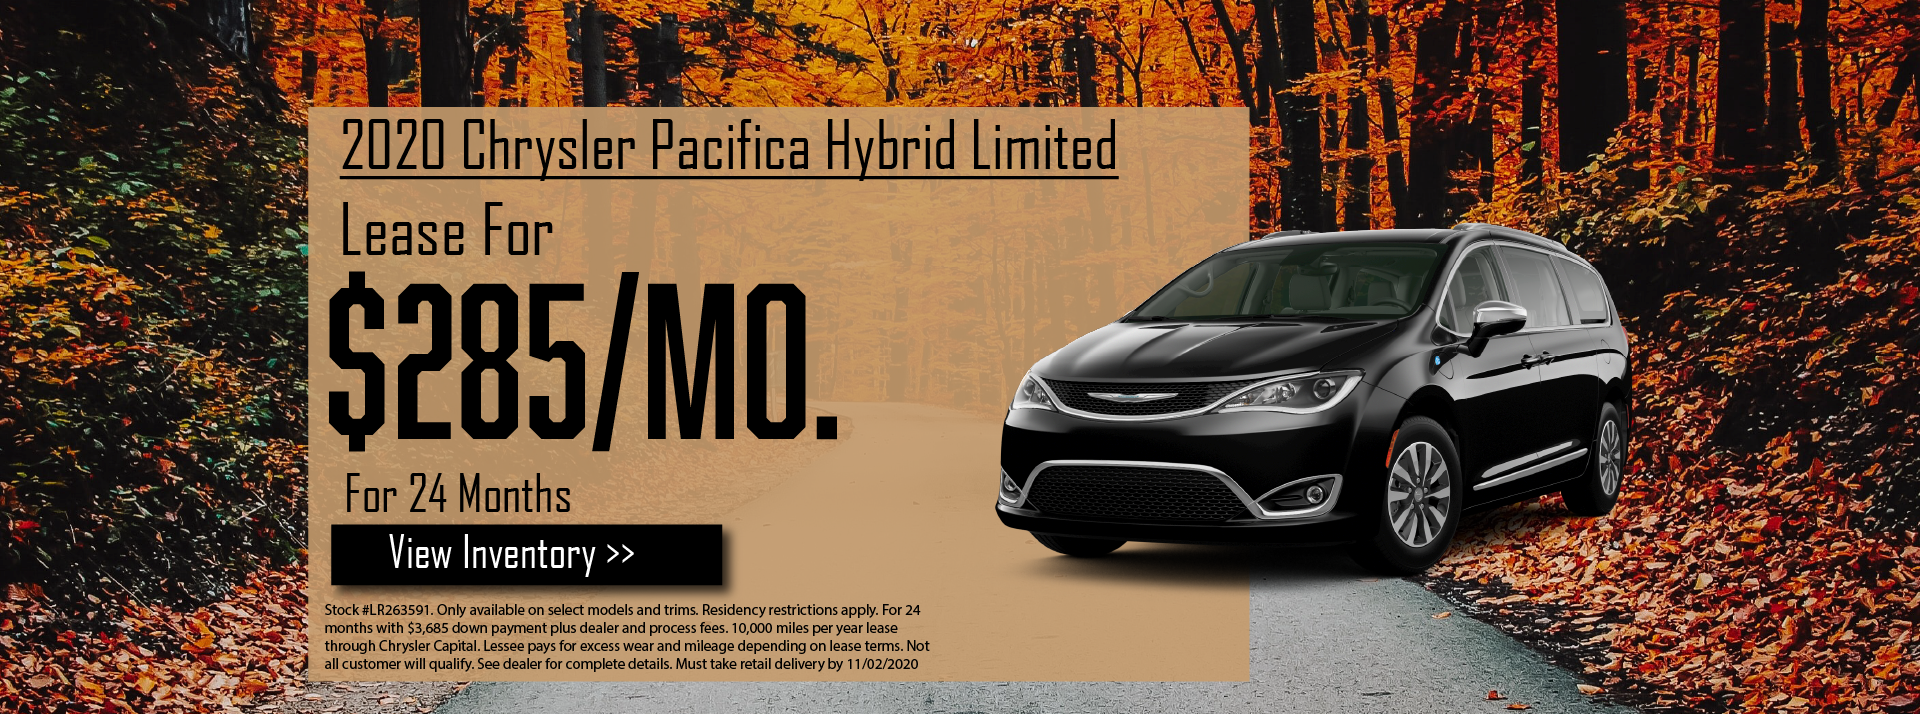 pacifica hybrid revised